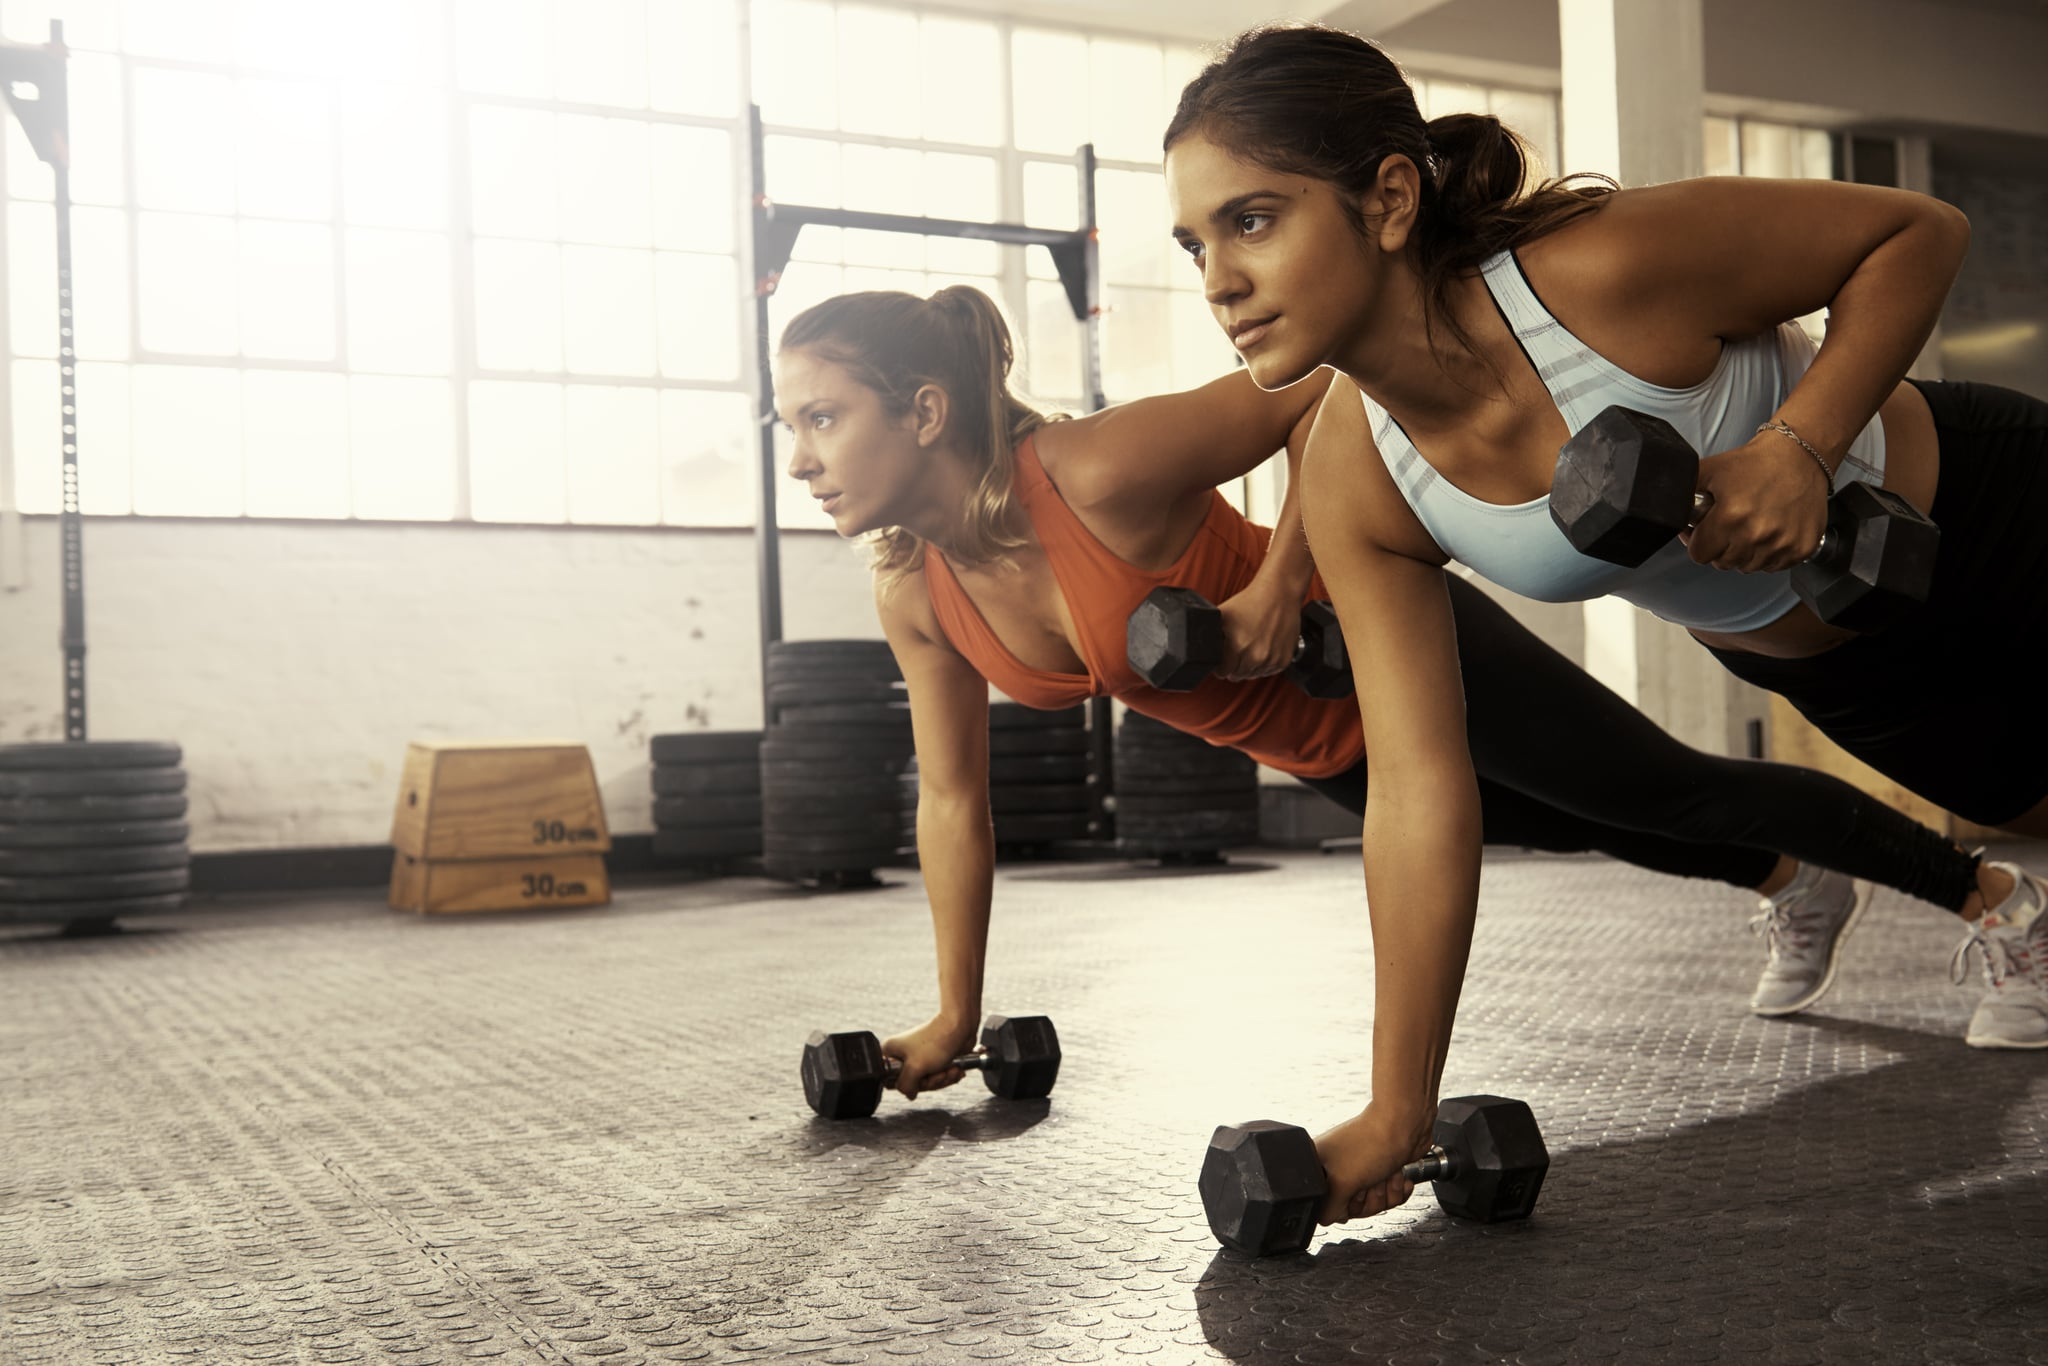 Shot of two women doing push-ups using dumbbellshttp://195.154.178.81/DATA/i_collage/pu/shoots/804605.jpg